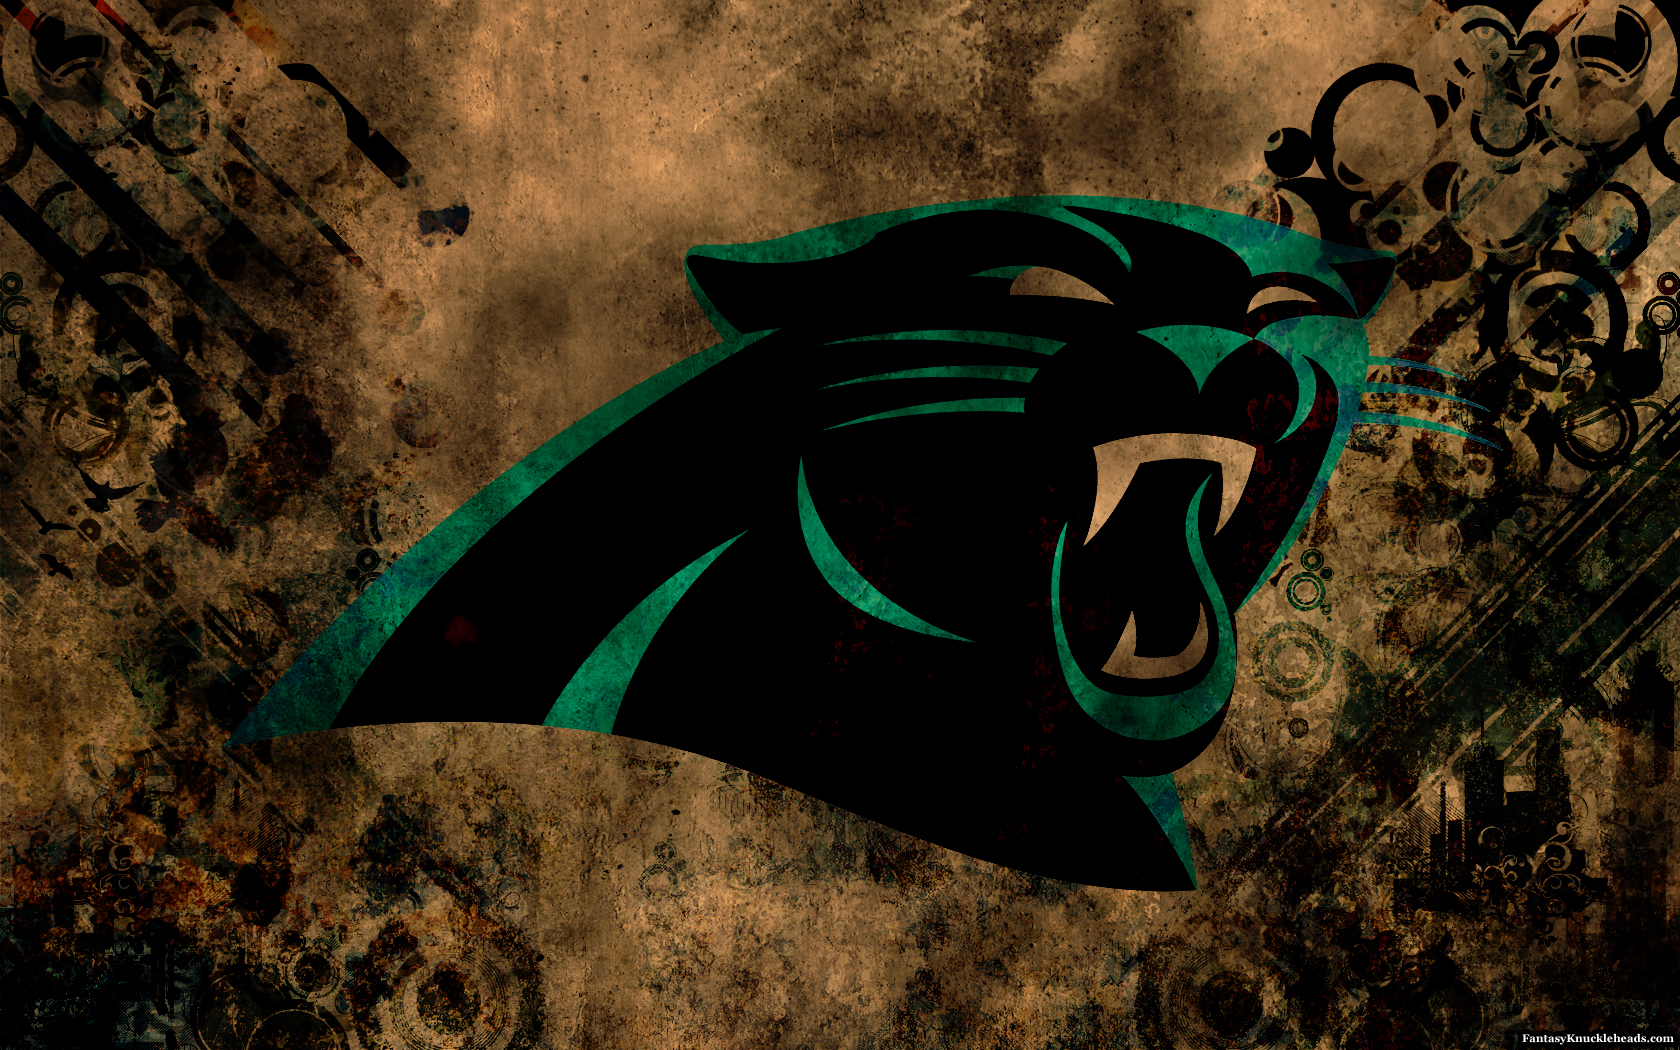 Carolina Panthers Distressed Wallpaper for Phones and Tablets 1680x1050